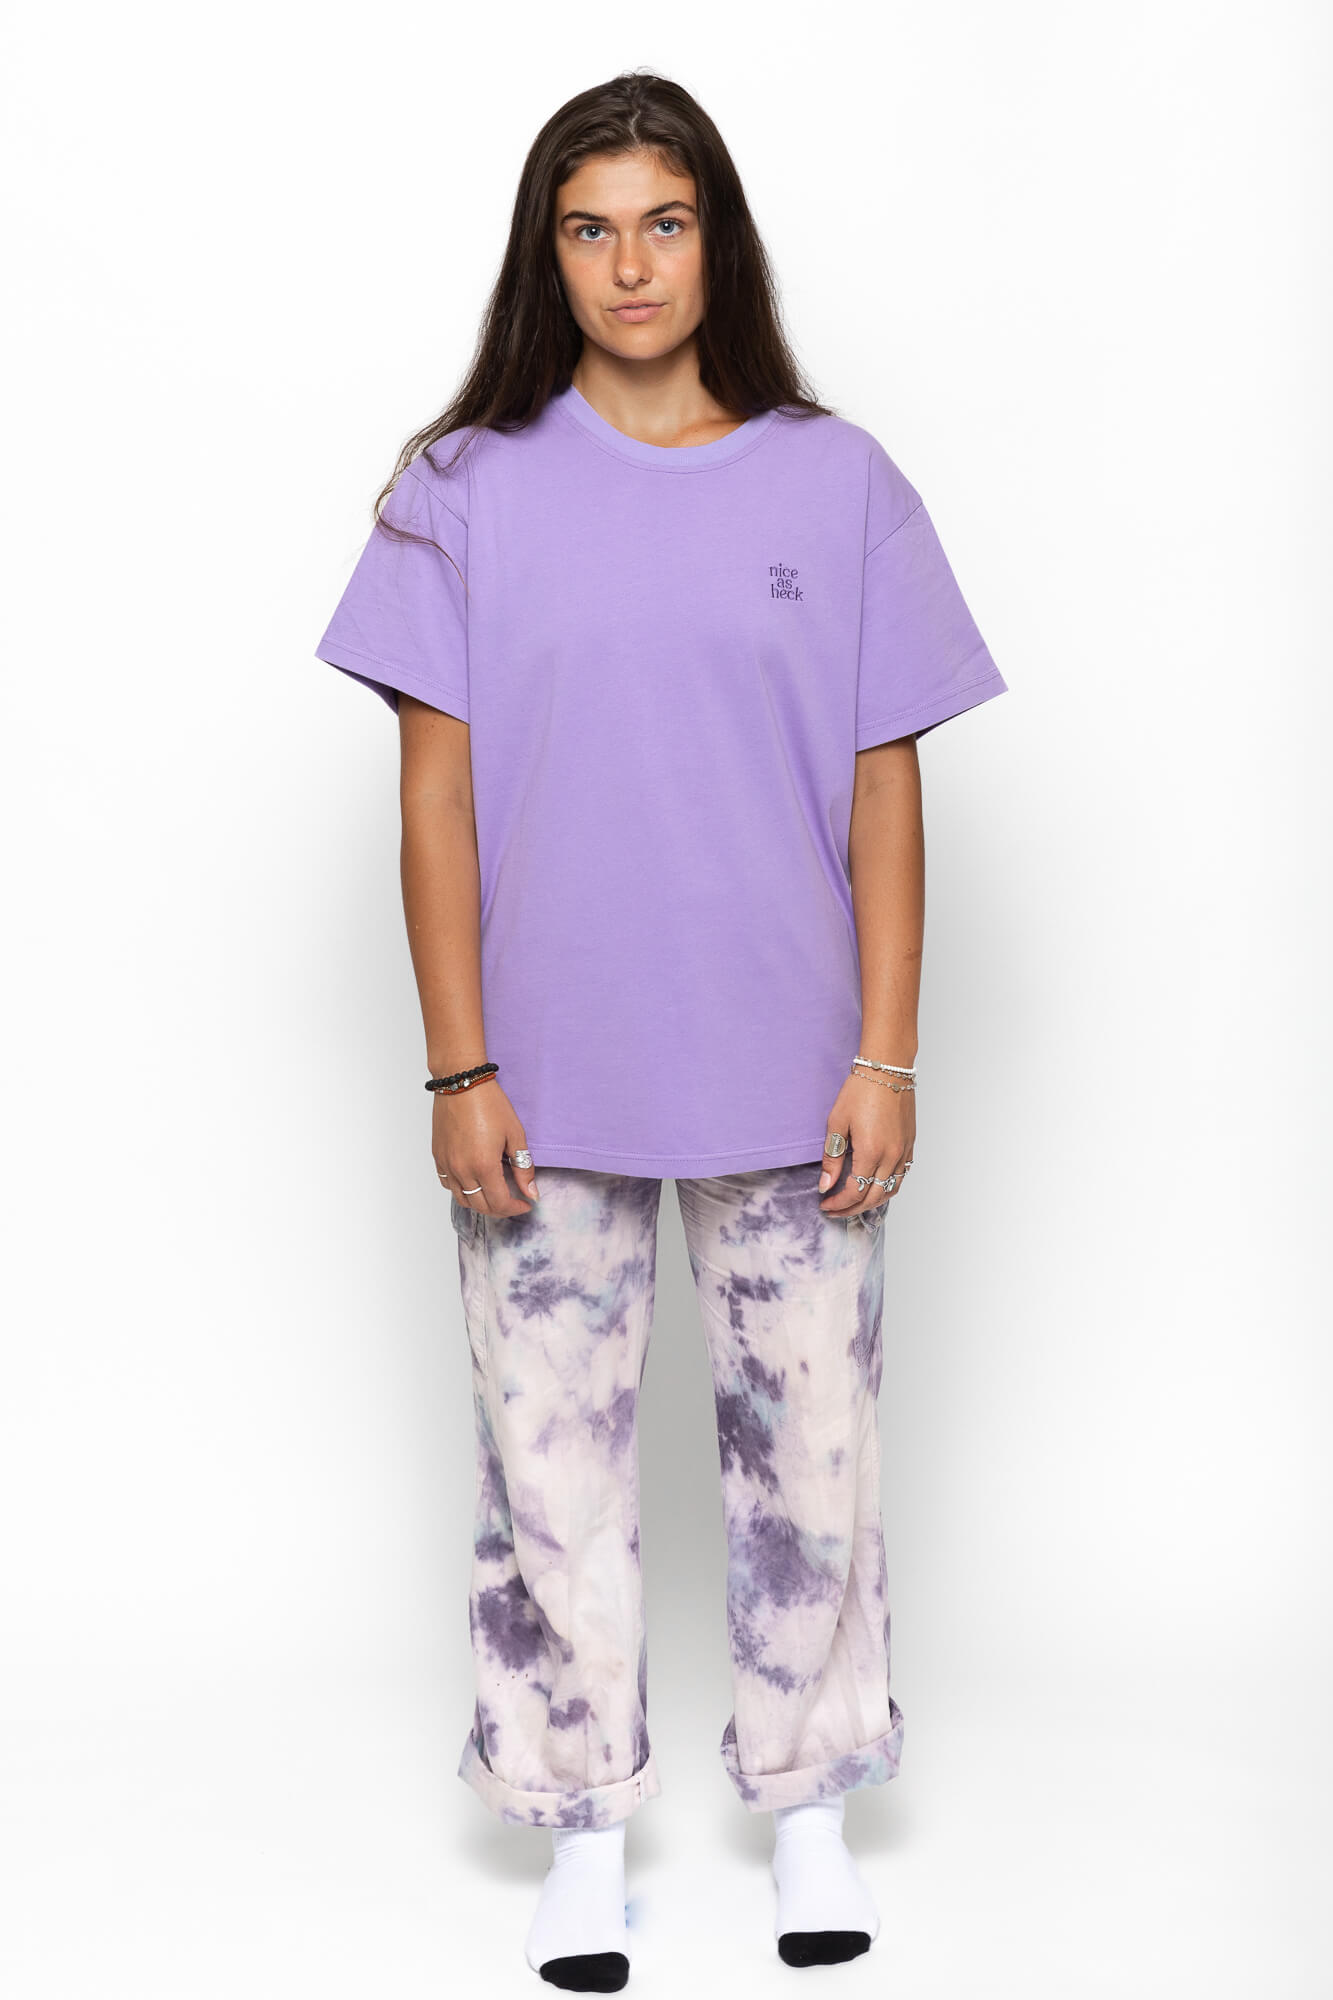 "5'8"" female model wearing purple weekender tee and purple tye dye pants"